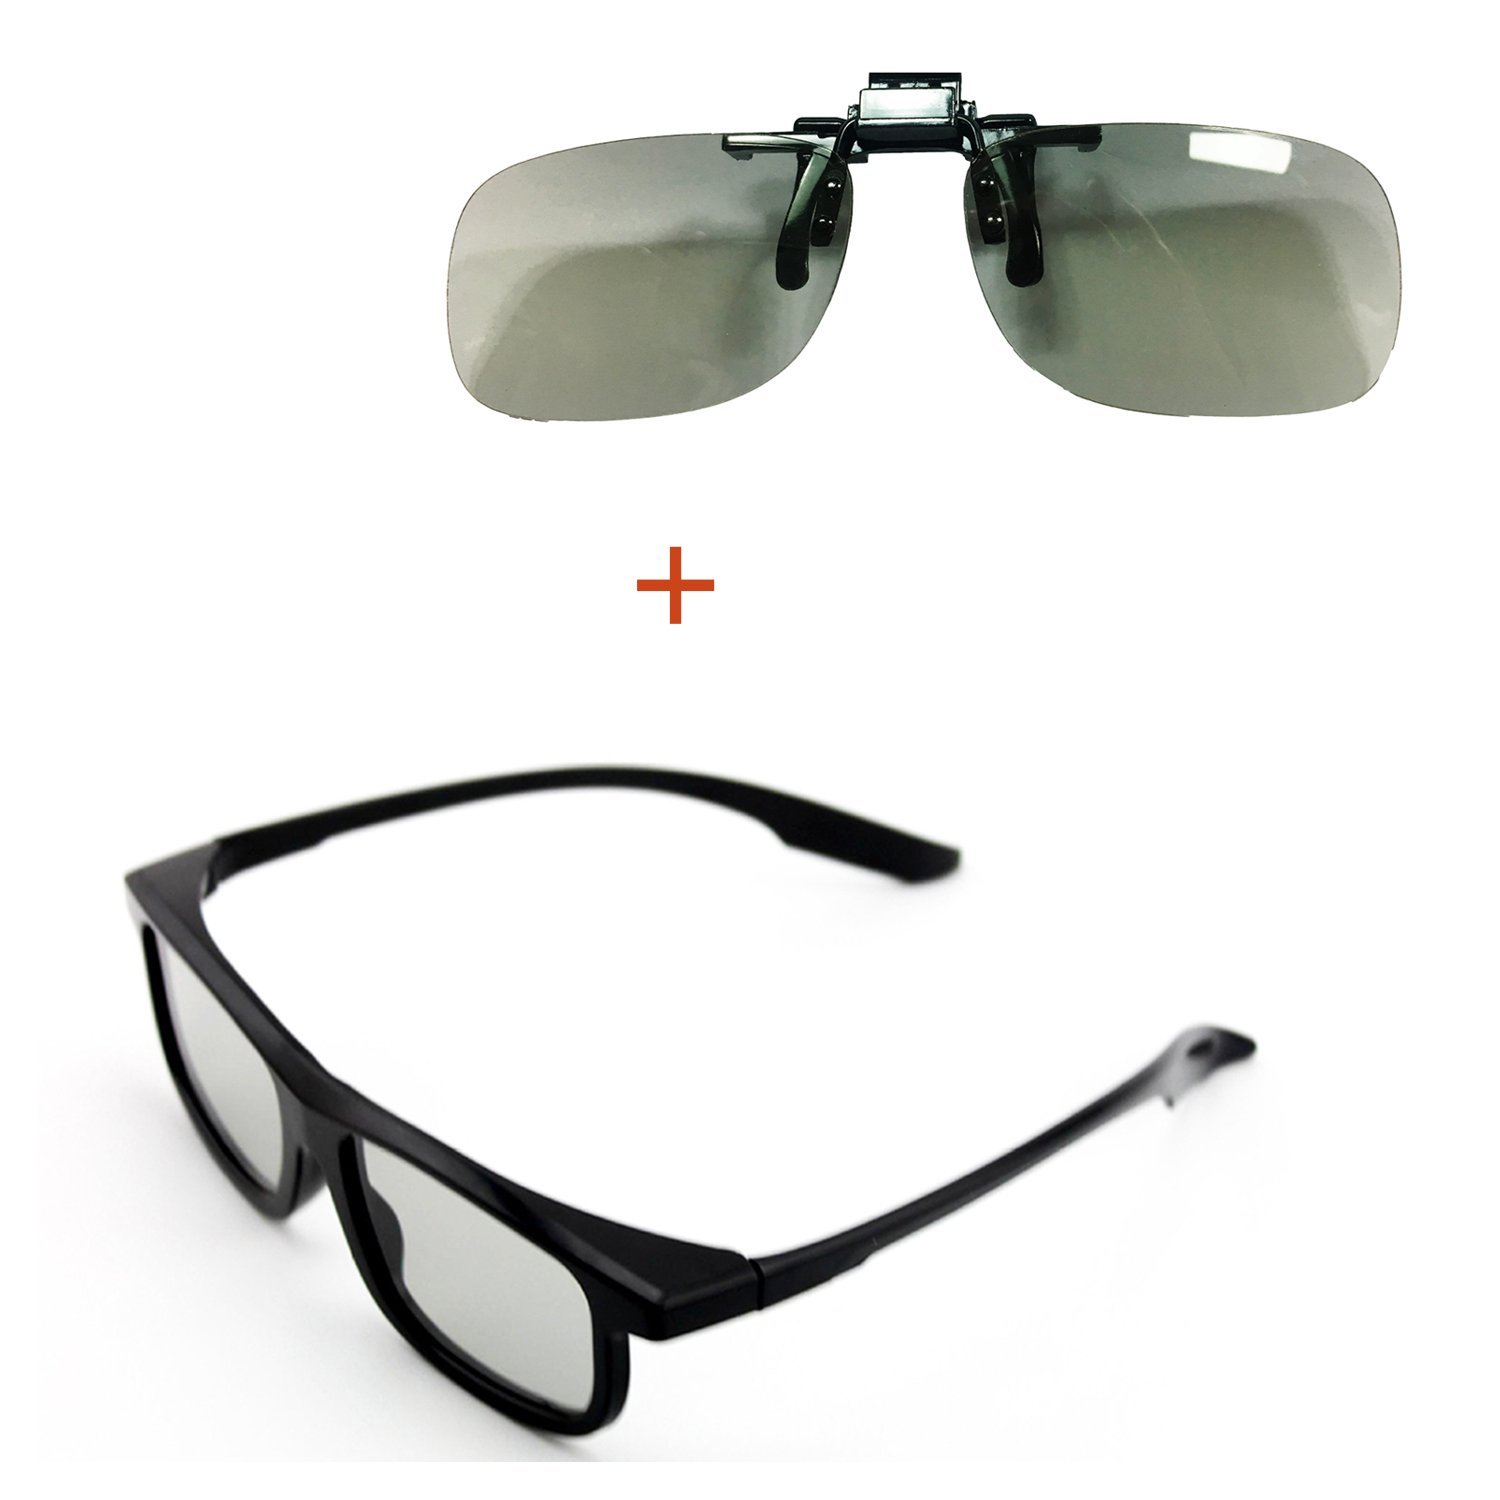 Goswot 2 Pairs of Passive Circular Polarized 3D Glasses for Real-D Theaters/ Passive 3D TVs